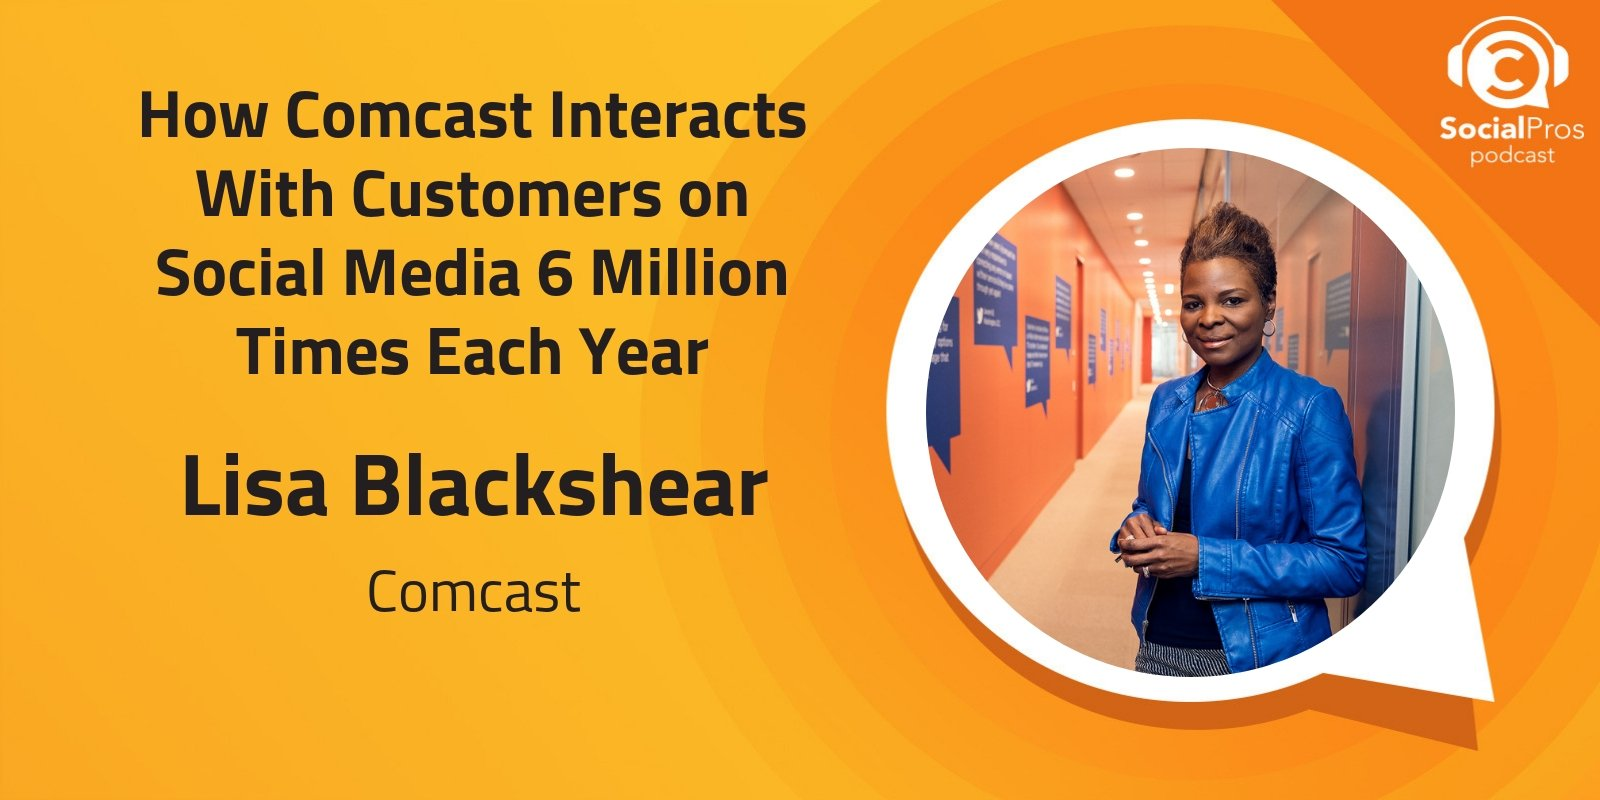 How Comcast Interacts With Customers on Social Media 6